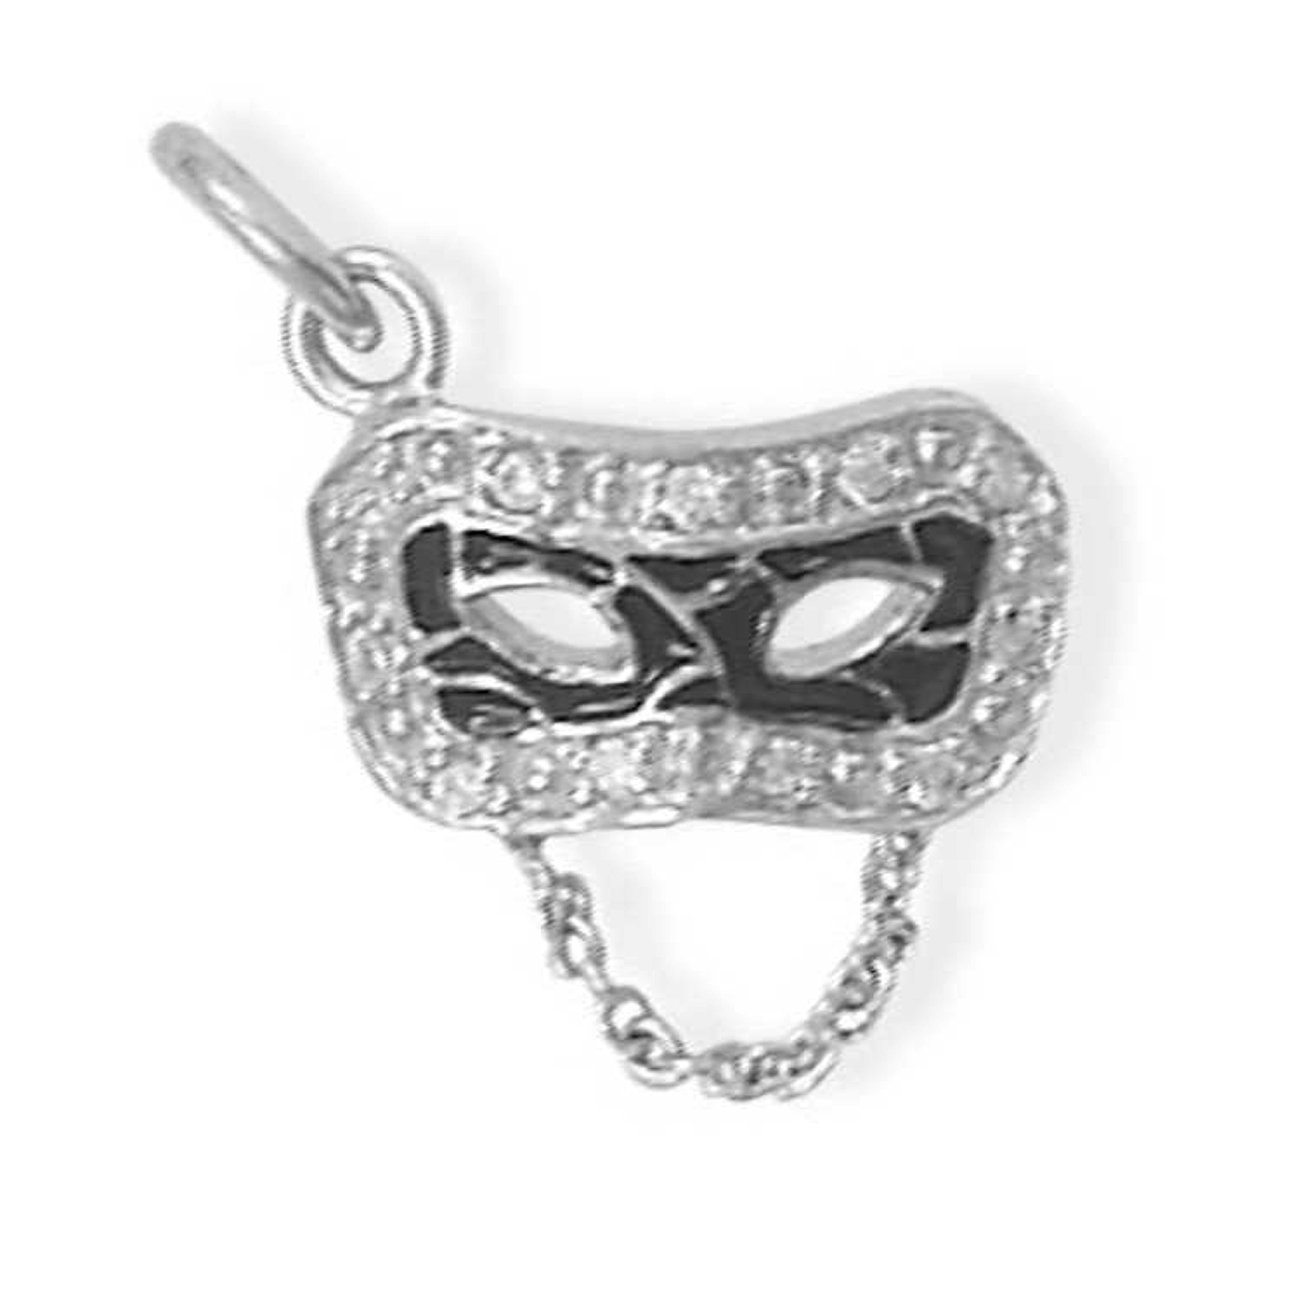 Sterling Silver Charm Bracelet With 3D Black Enameled Cubic Zirconia Mardi Gras Masquerade Mask Char